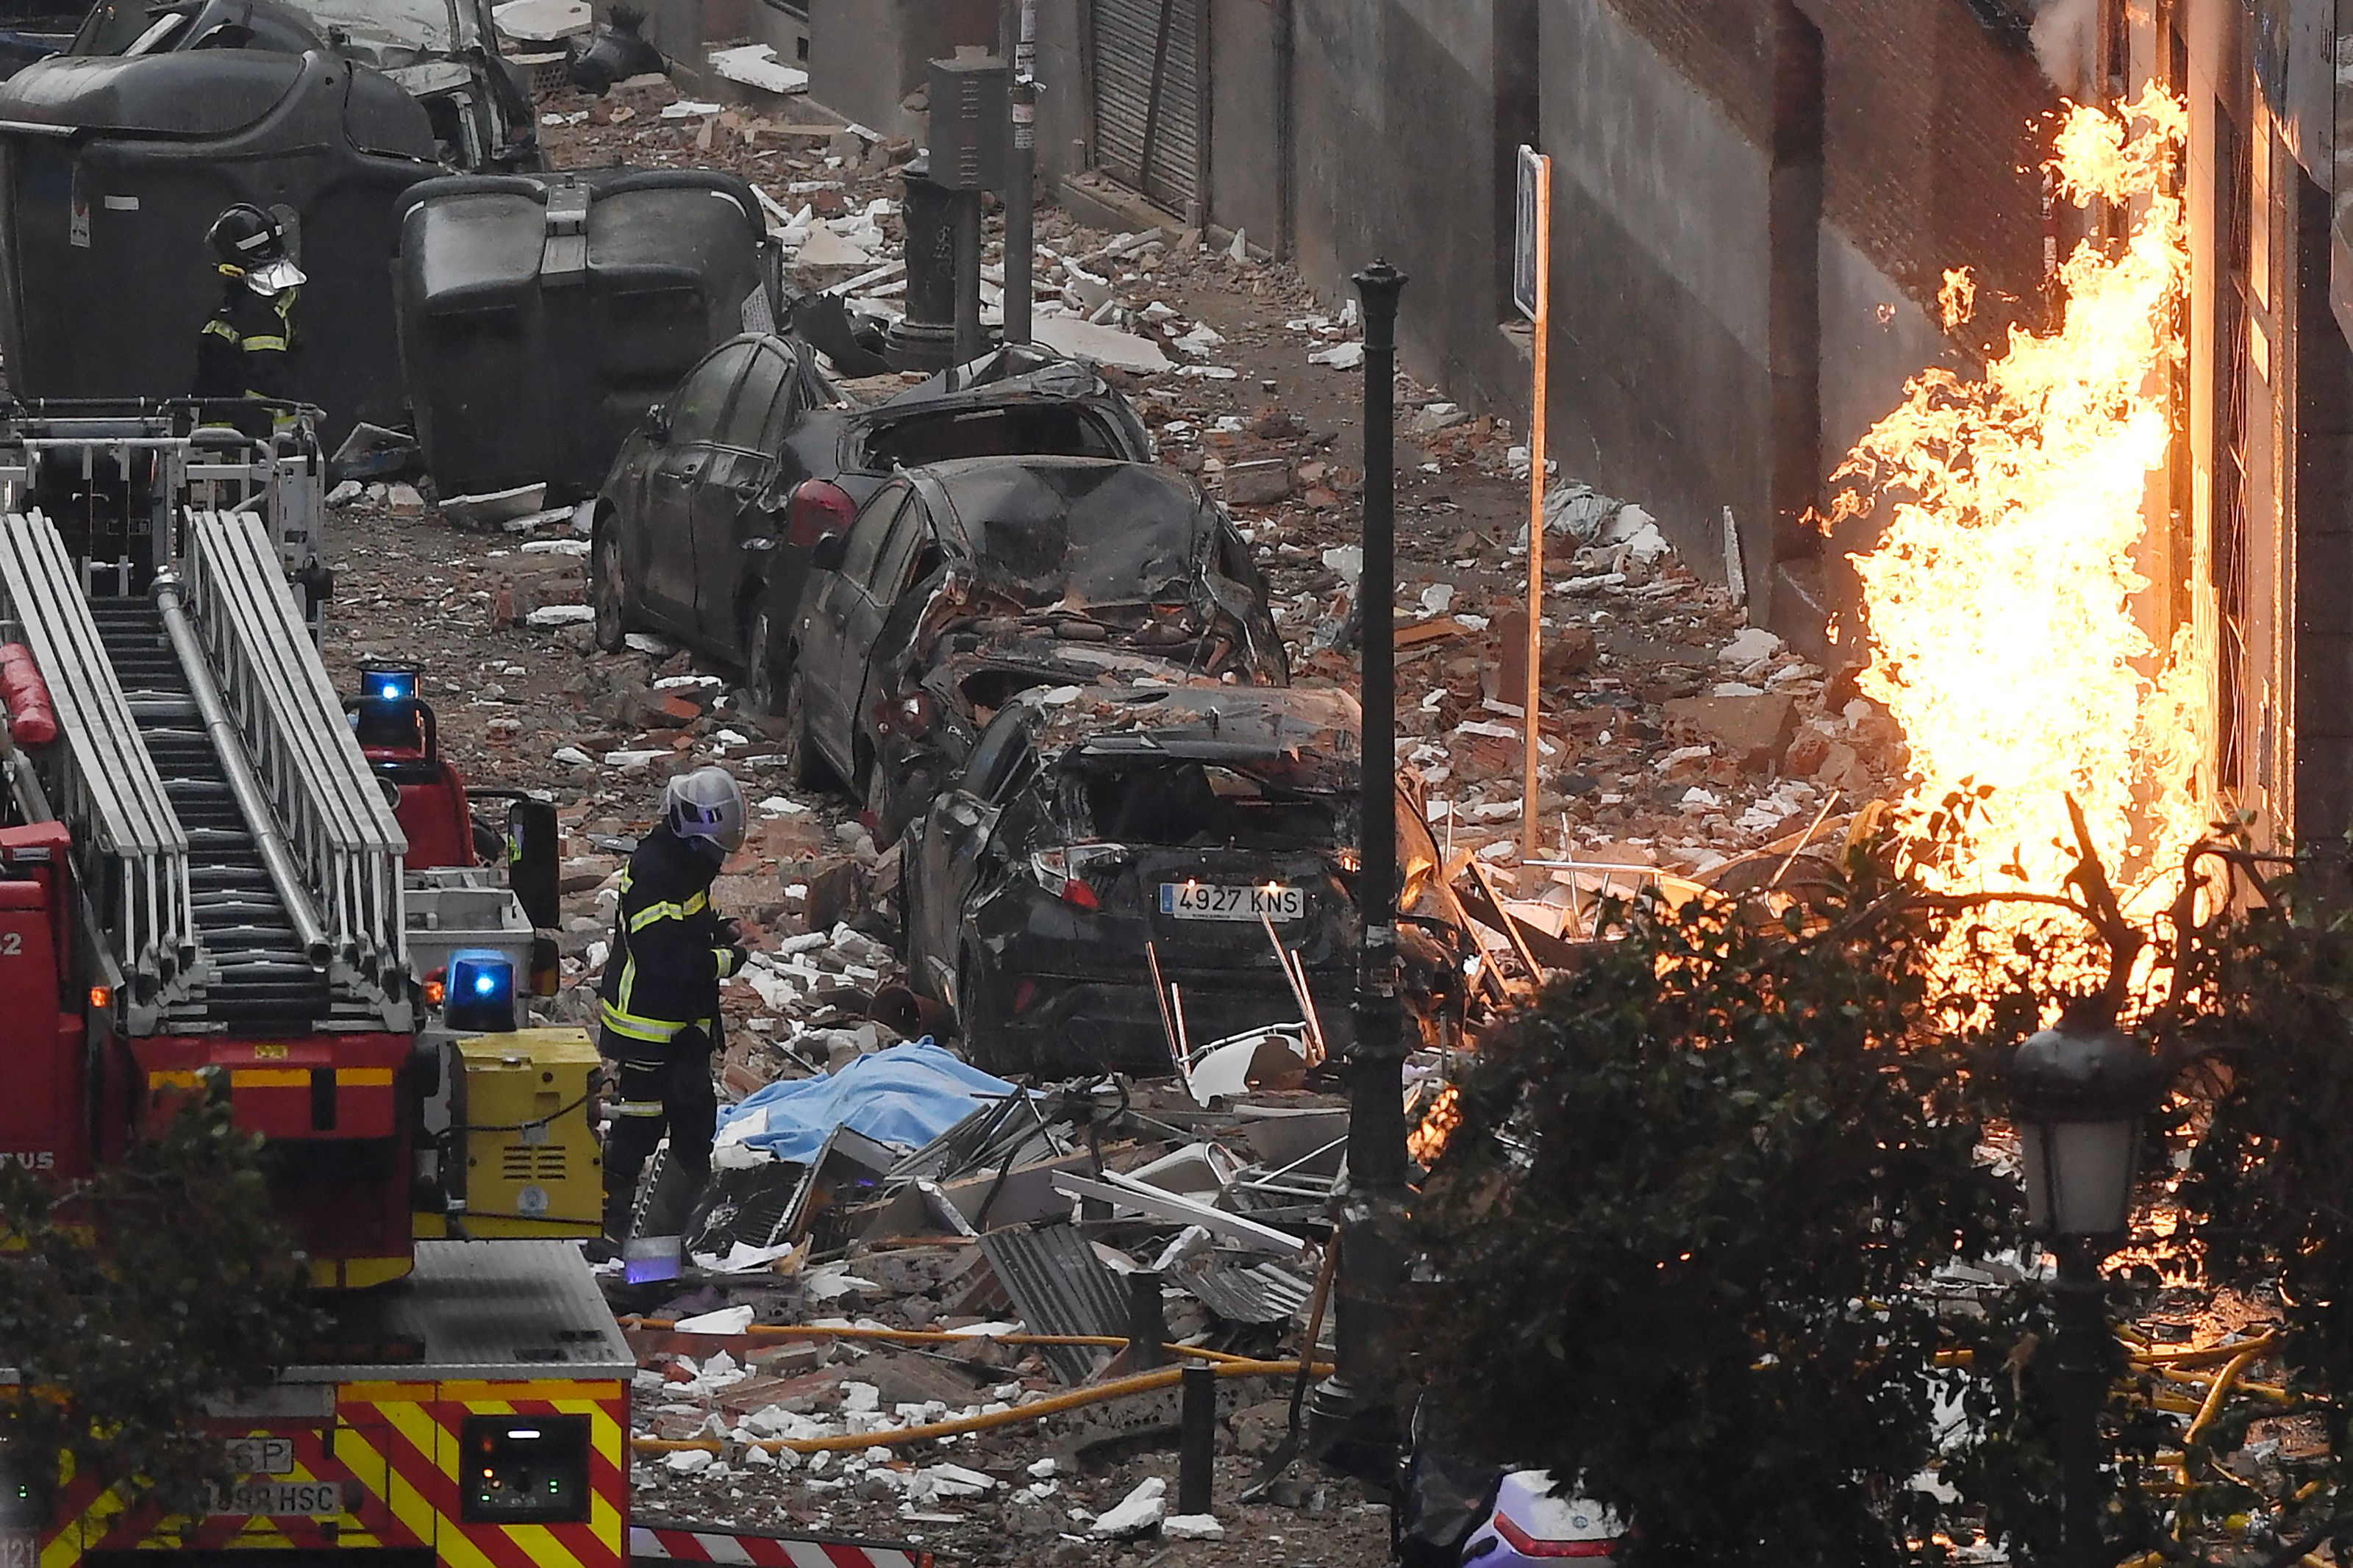 Firefighters walk outside a building in Madrid on January 20, 2021 after a strong explosion rocked it.